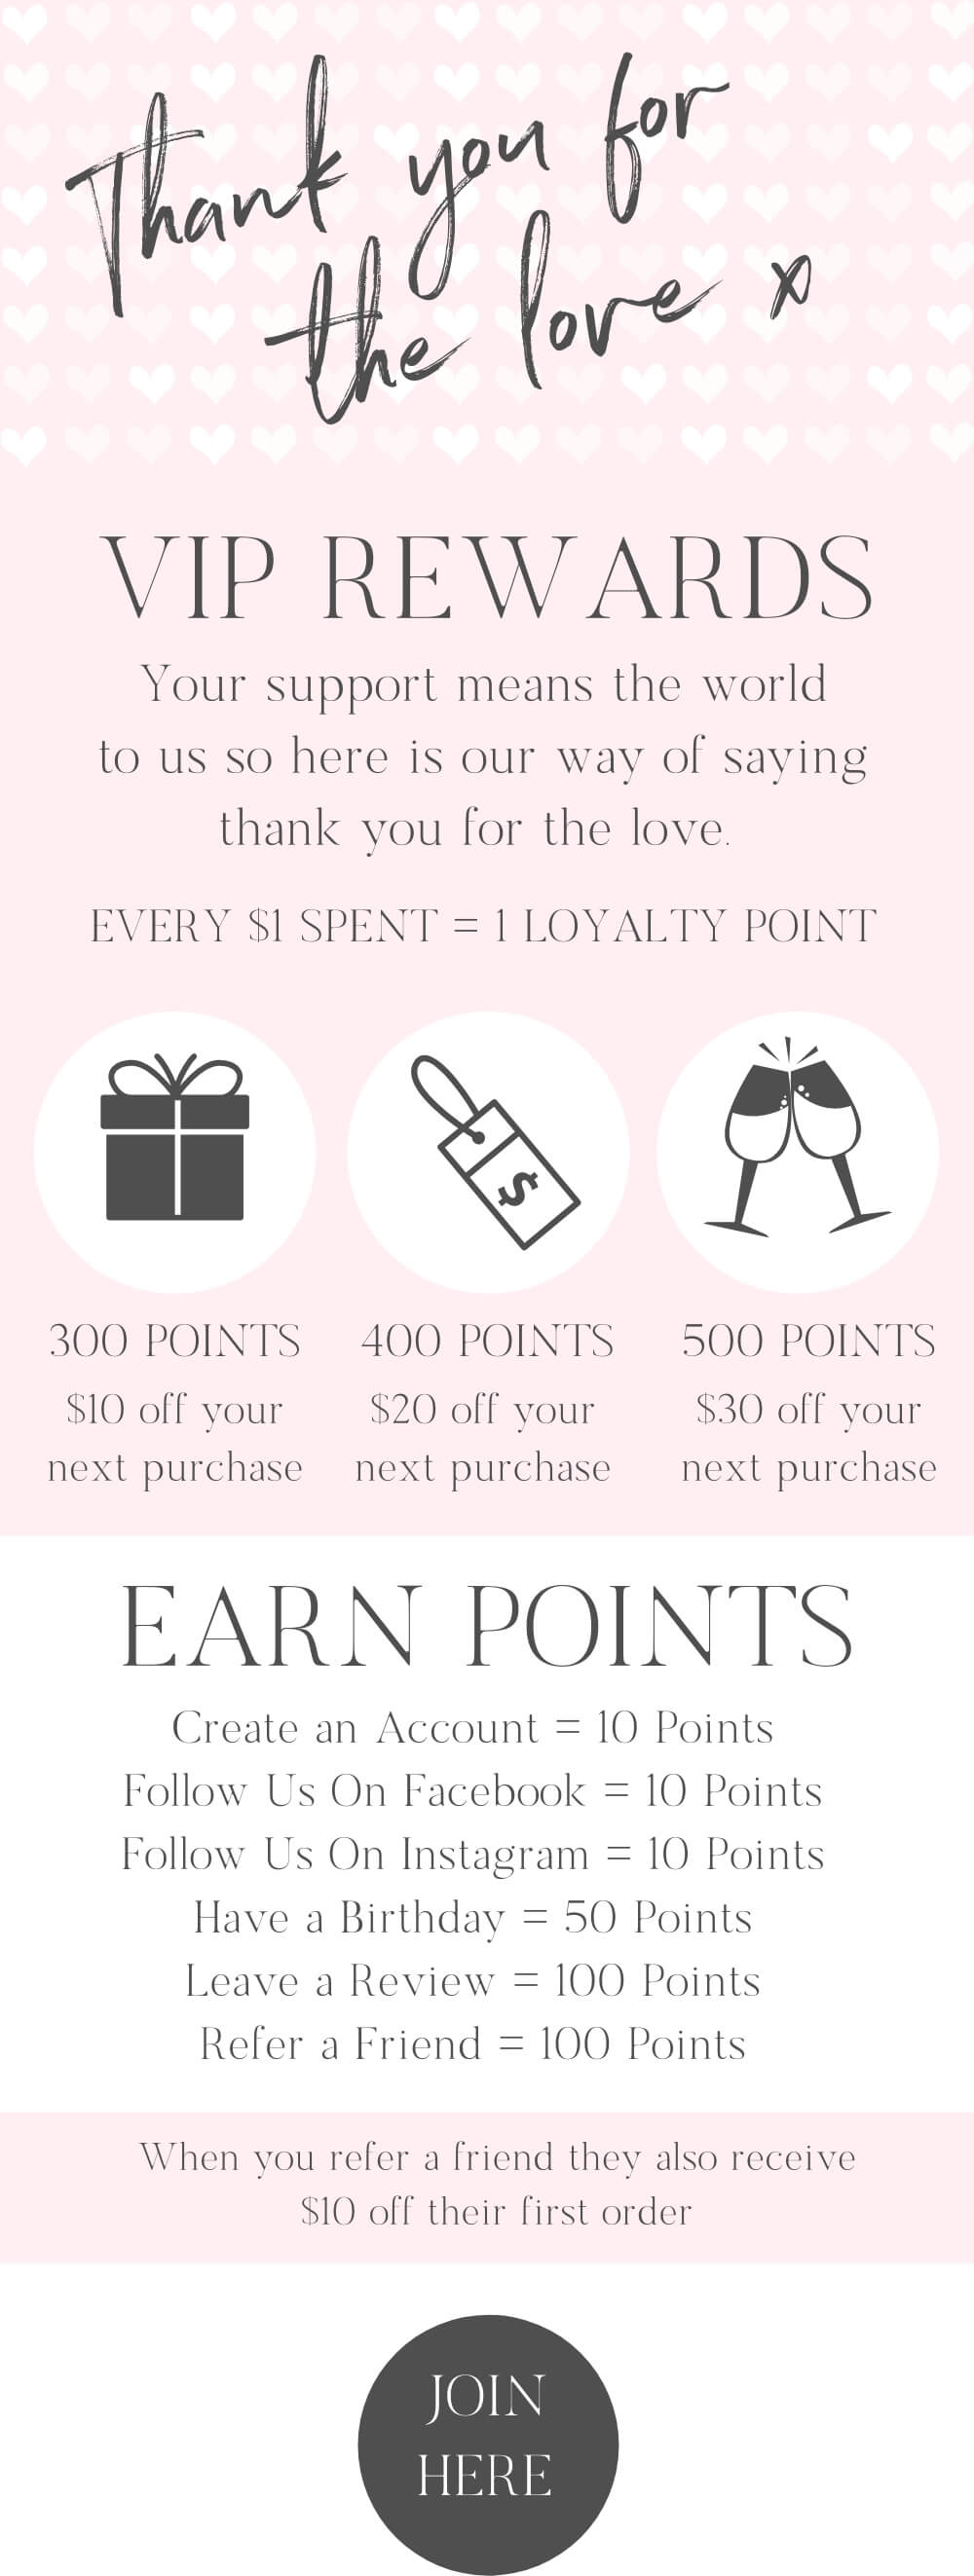 Isle of summer loyalty program